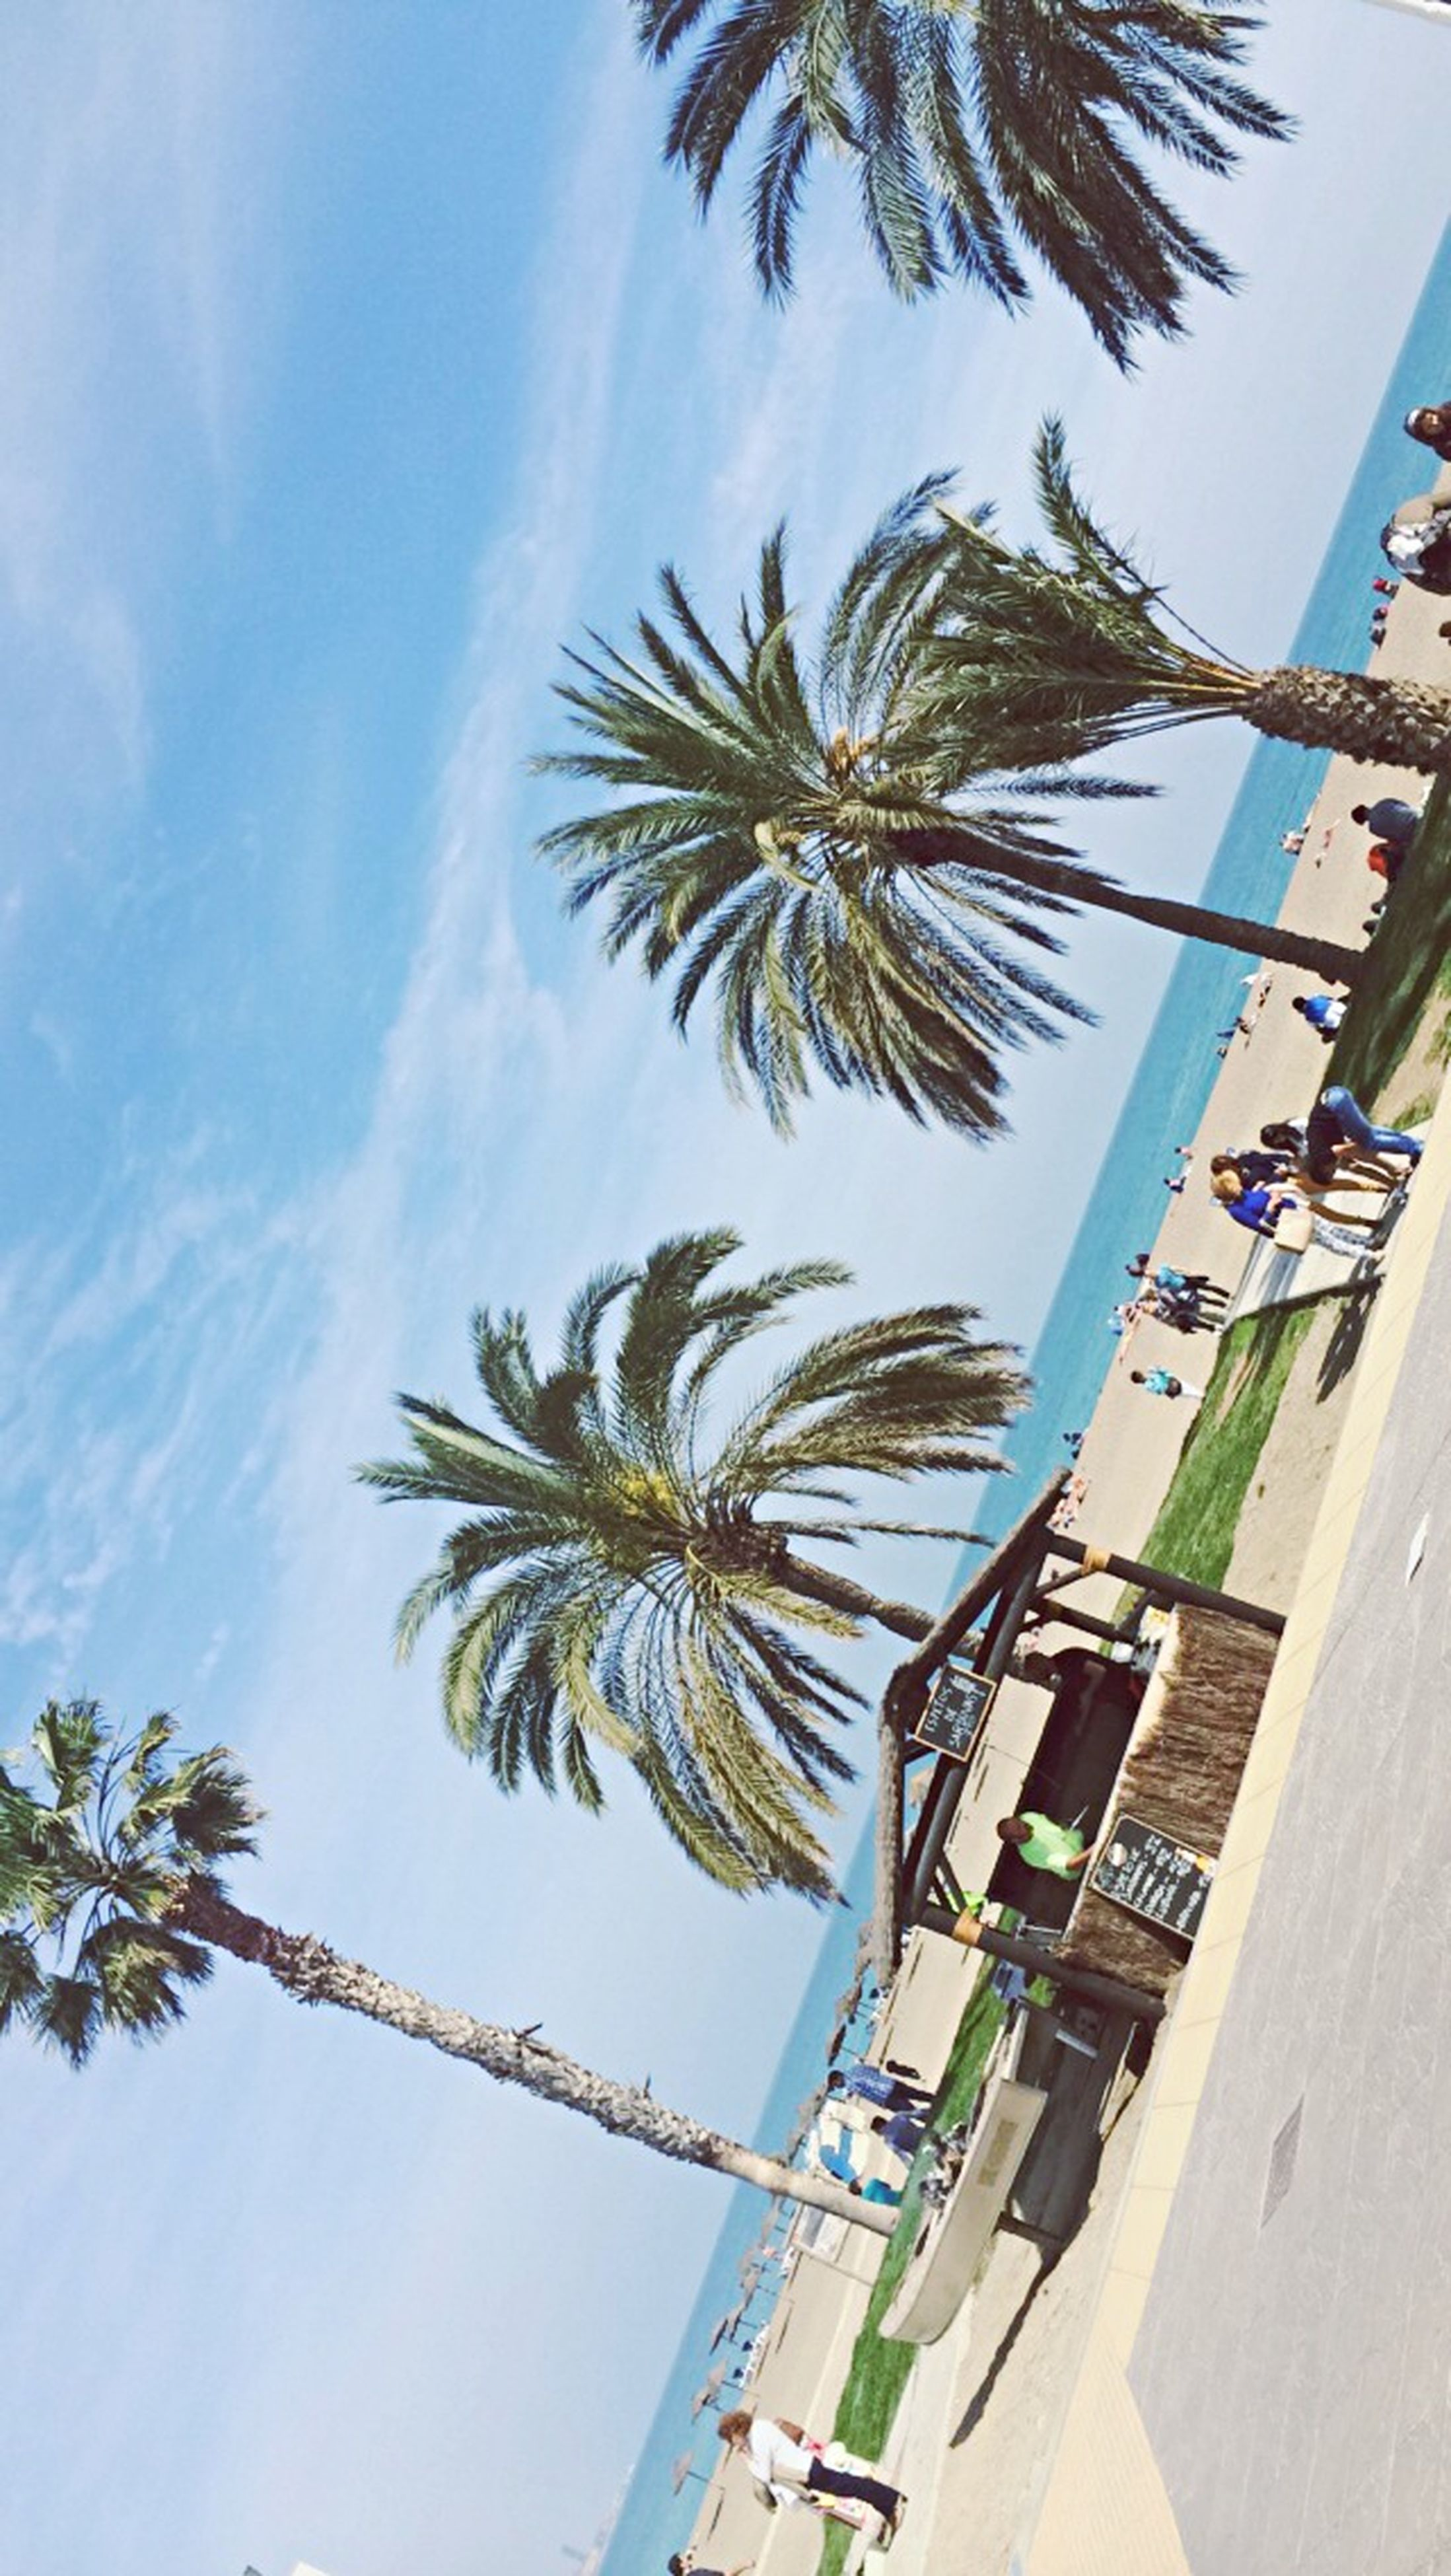 palm tree, sky, tree, low angle view, growth, blue, built structure, coconut palm tree, day, sunlight, cloud, cloud - sky, nature, beach, building exterior, architecture, outdoors, tree trunk, sea, incidental people